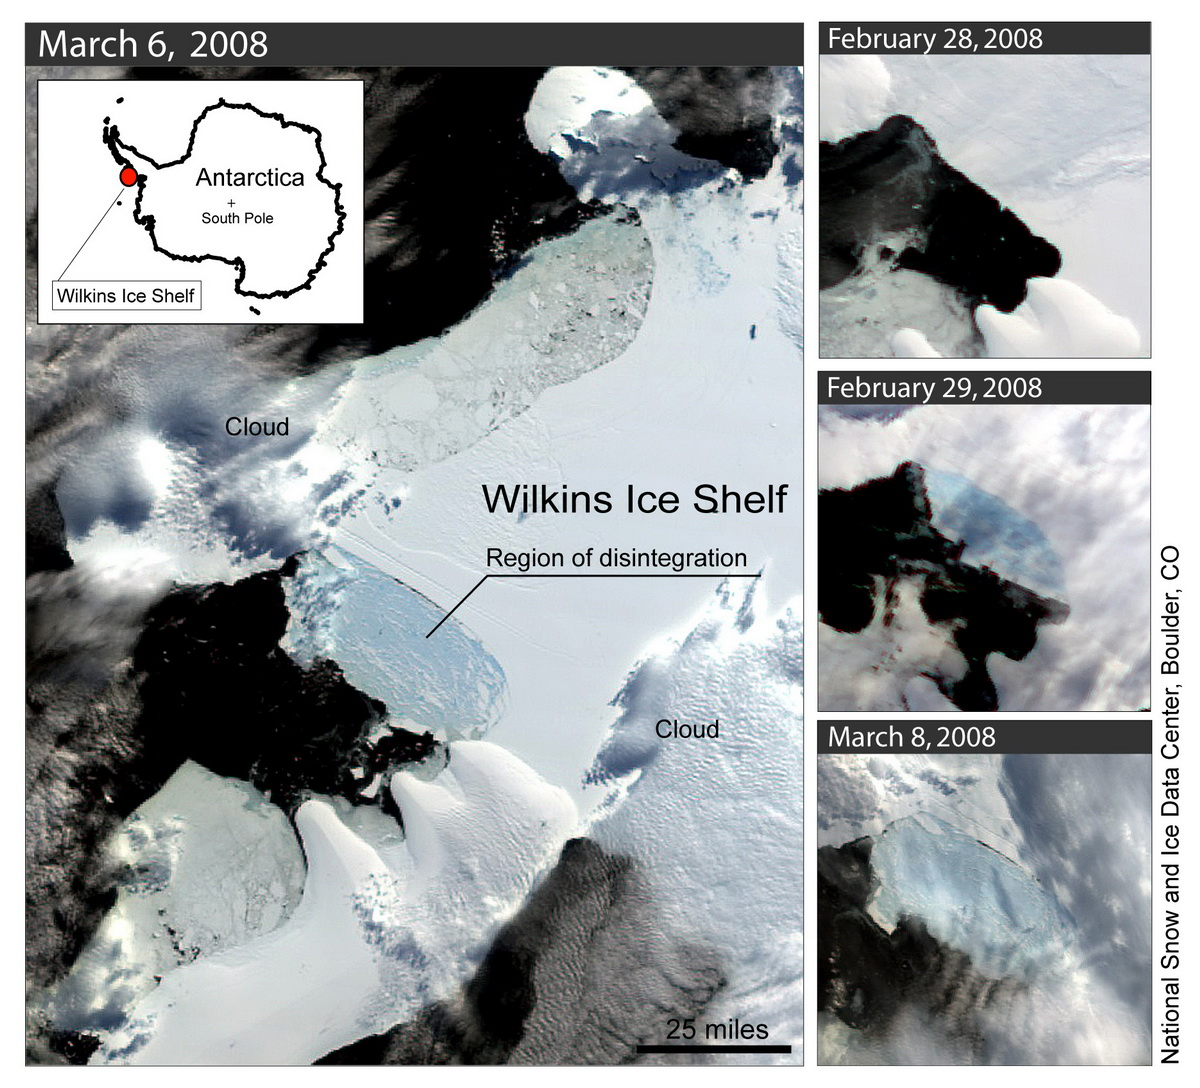 Ice Shelf plateforme Wilkins